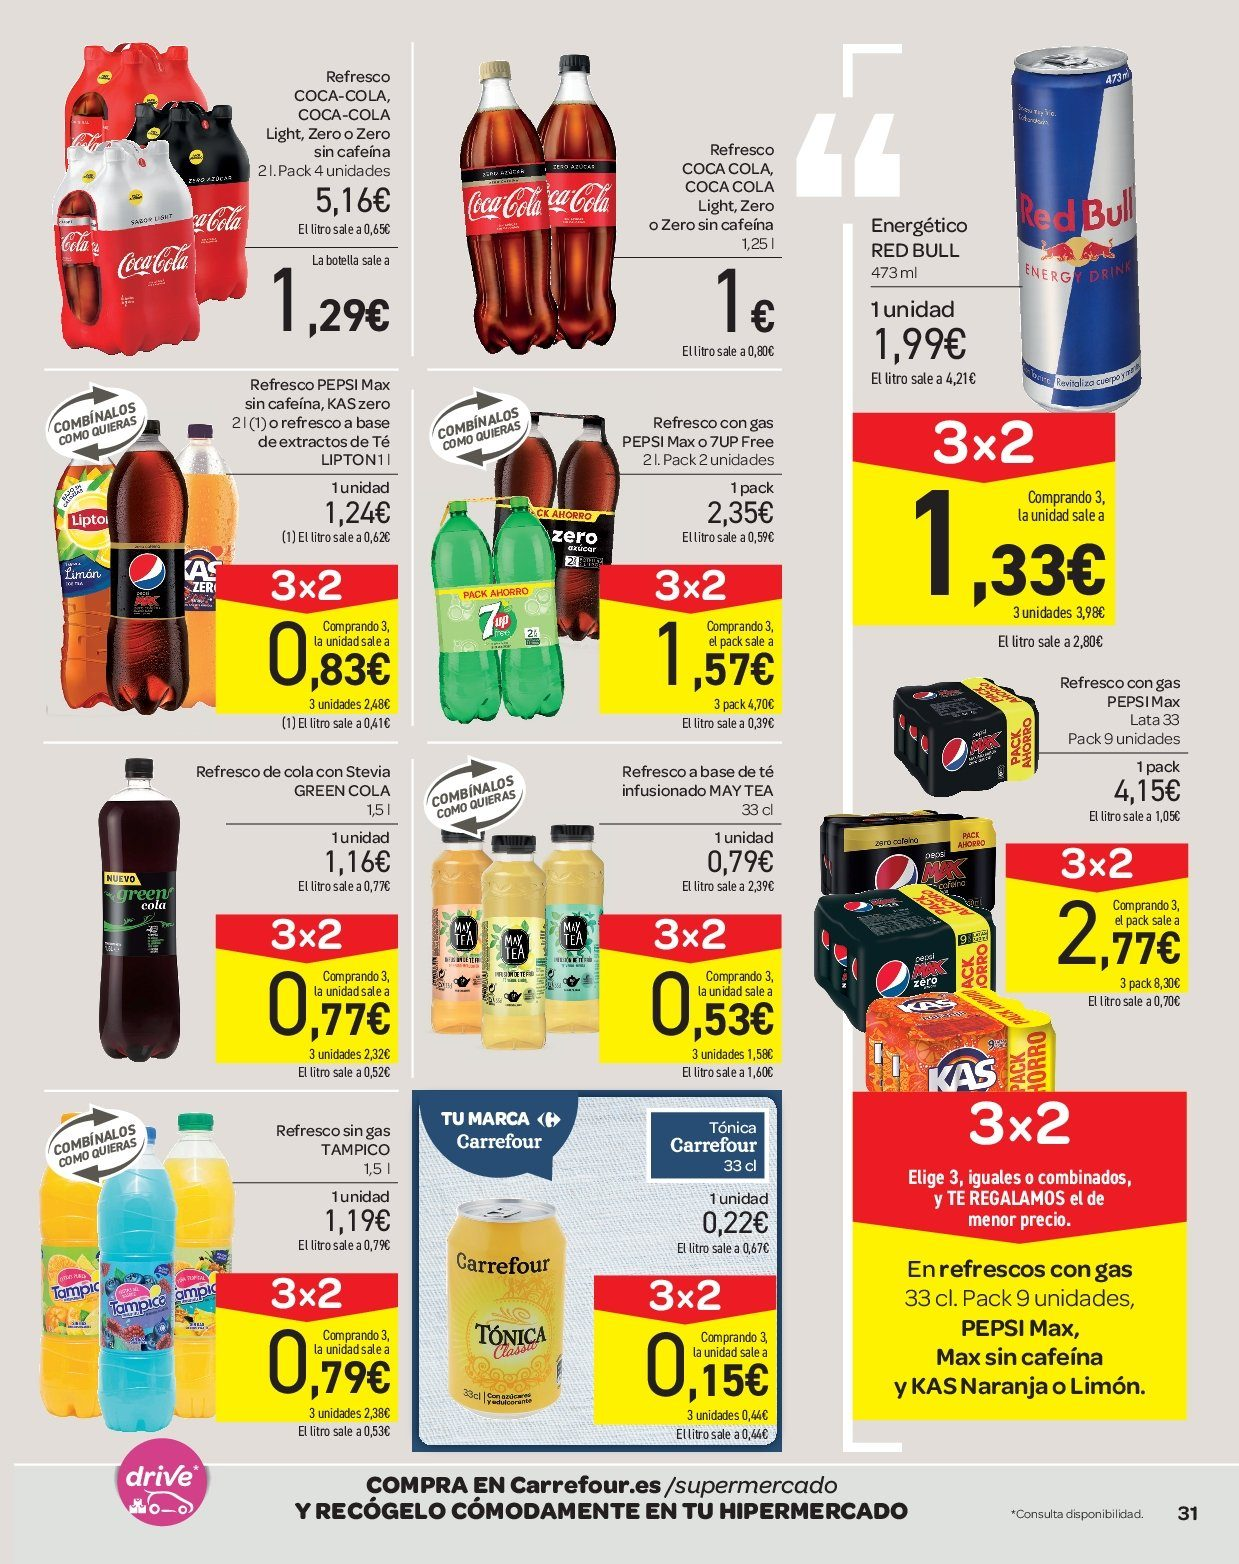 Folleto actual Carrefour - 2.1.2019 - 16.1.2019 - Ventas - refresco 43f931fbcca2